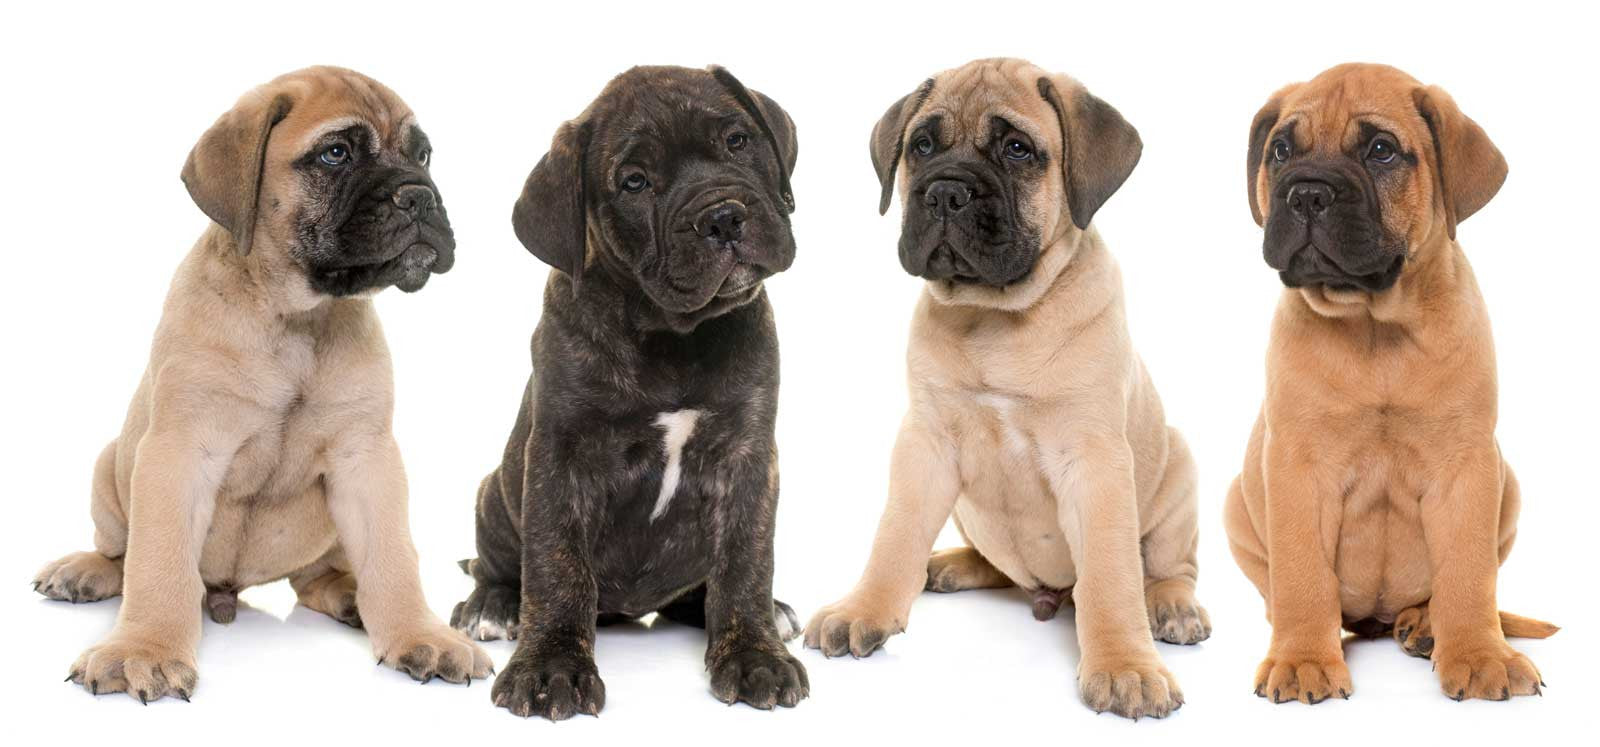 The Blissful Dog Bullmastiff Collection Shop From Nose To Toes